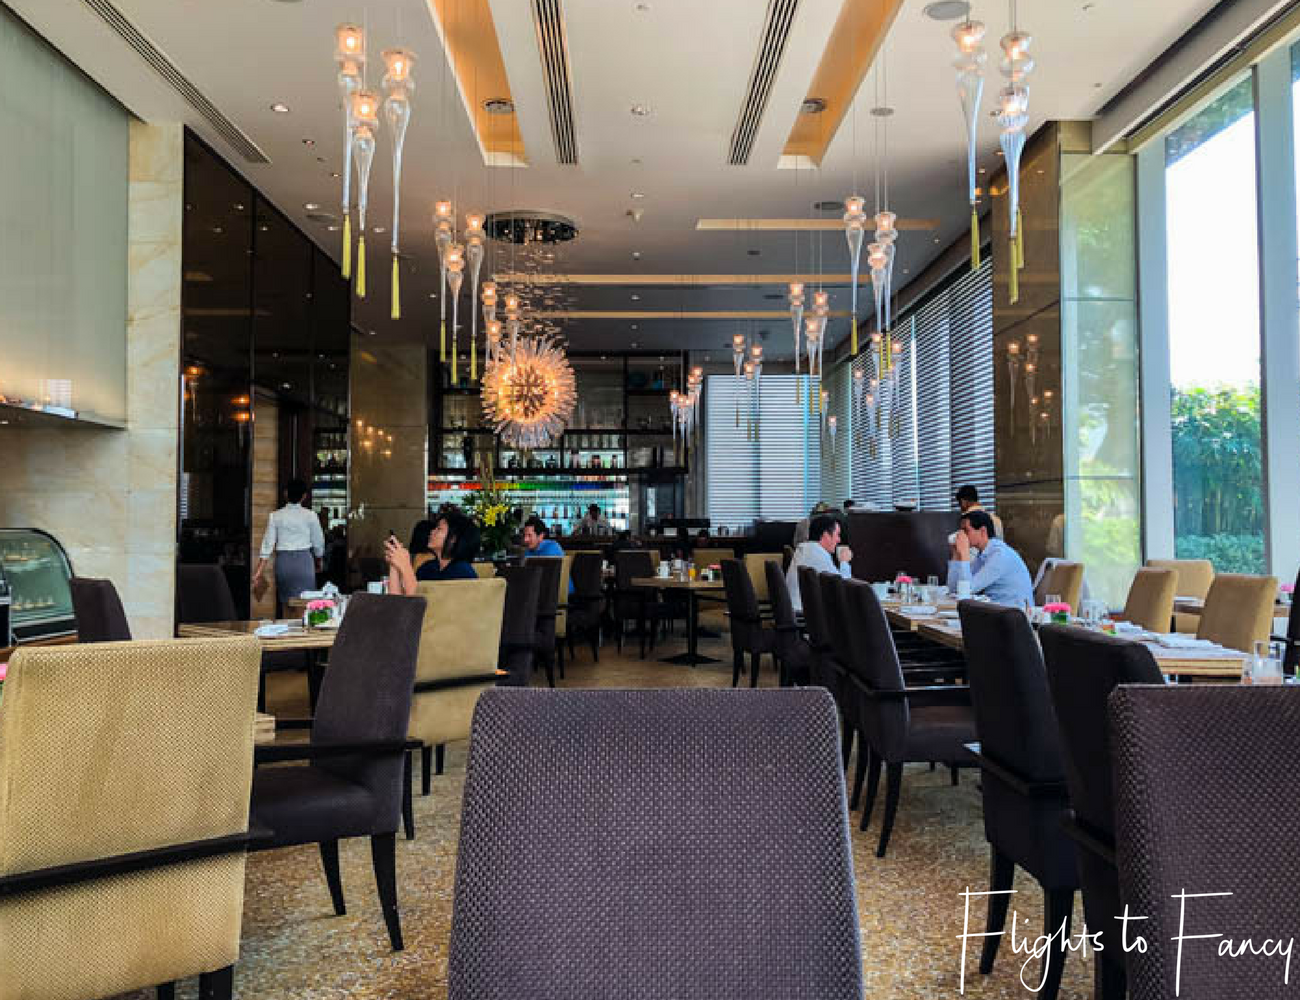 Flights To Fancy @ Raffles Makati Manila - Restaurant